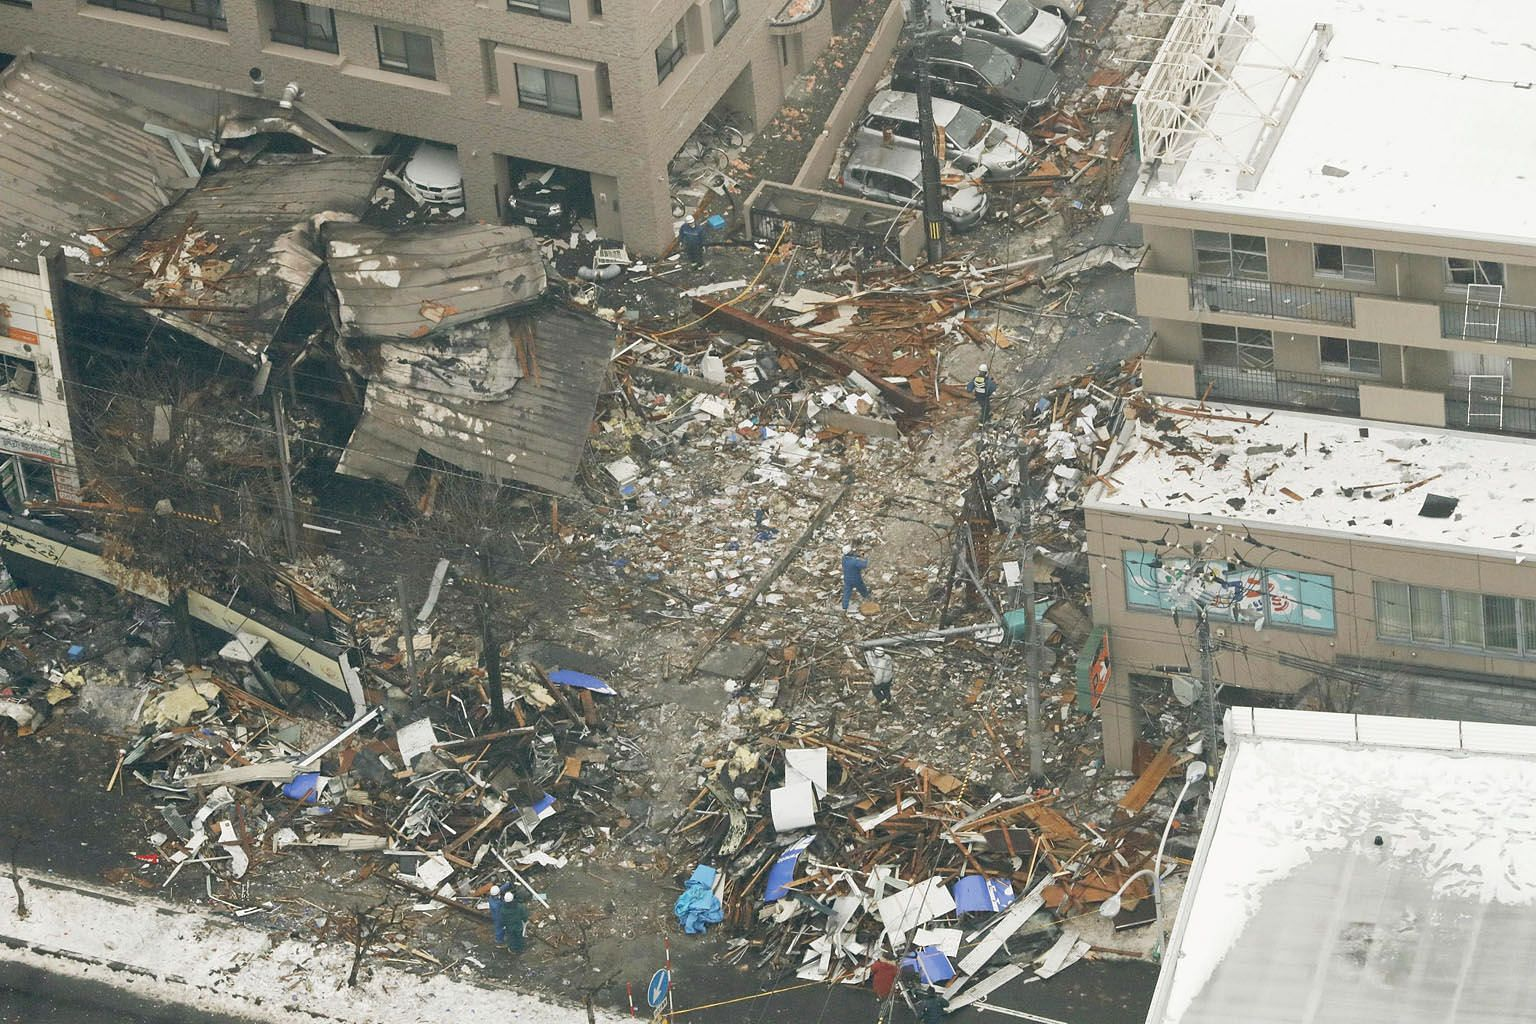 This aerial view shows workers inspecting the site of the collapsed and charred building in Sapporo, northern Japan, where a large explosion occurred, injuring 42 people. The force of the explosion shattered glass windows in at least 20 buildings, so